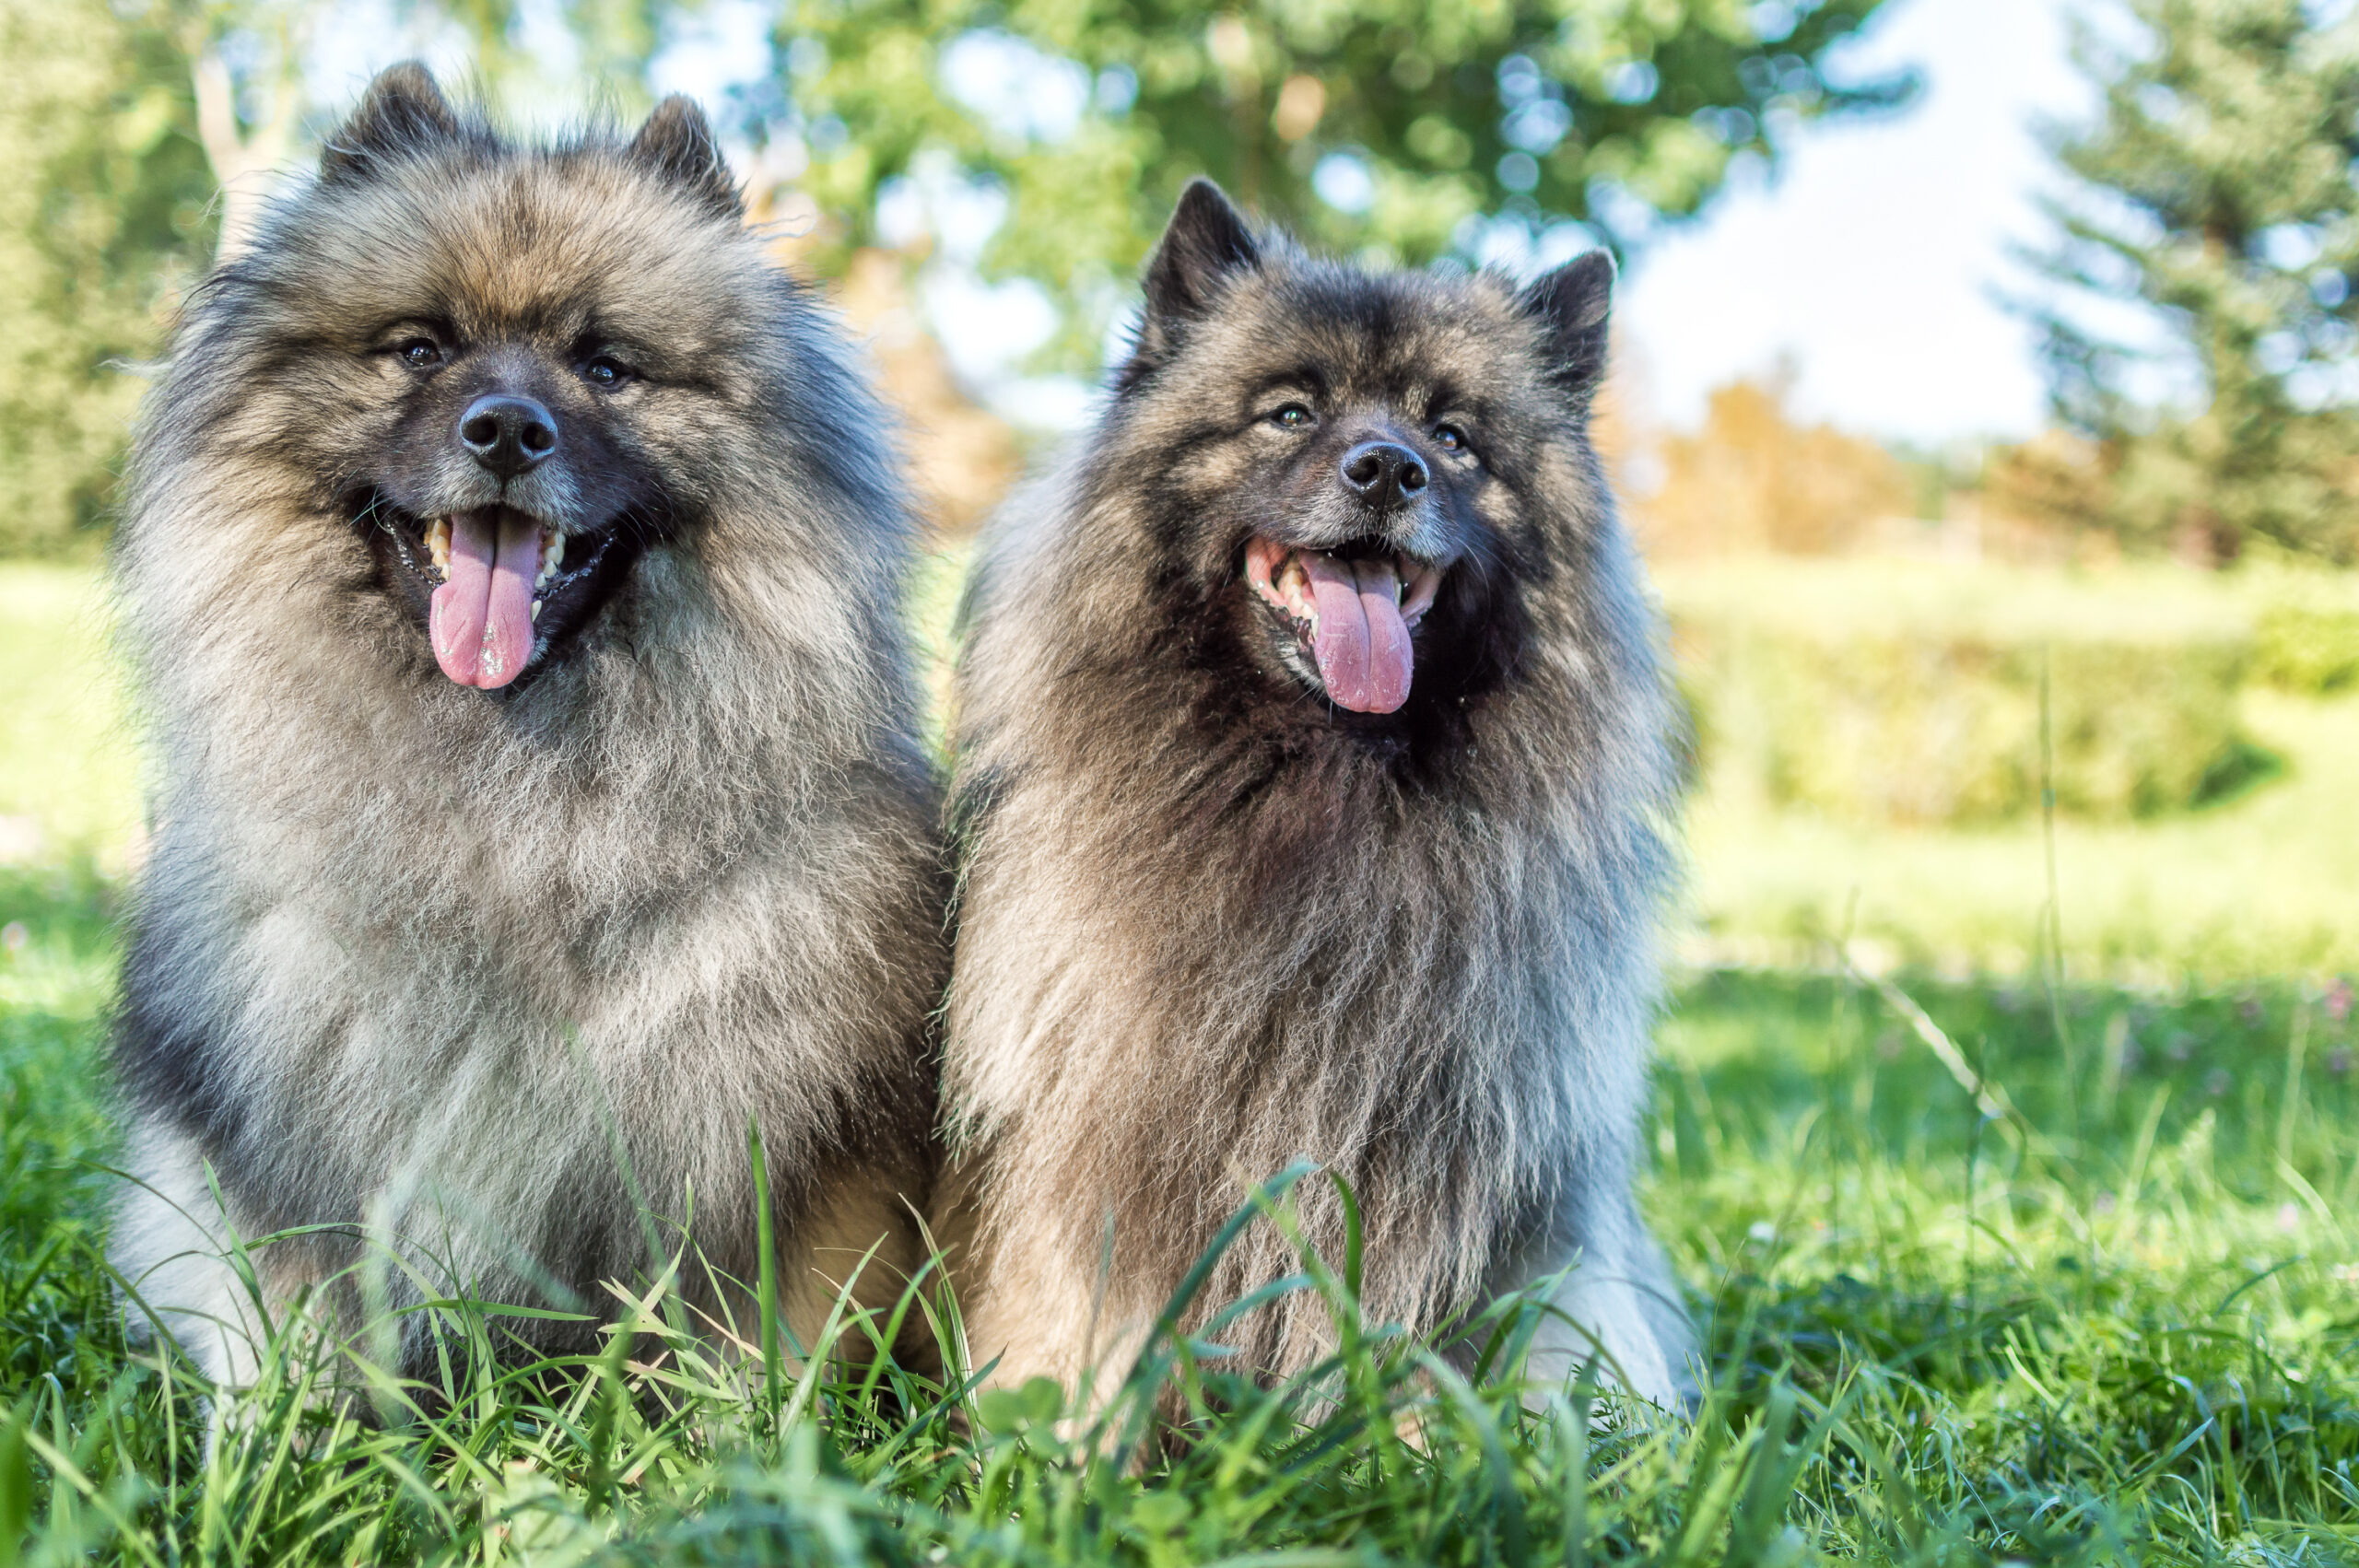 Two Keeshond dogs sitting in a grassy field in the sun